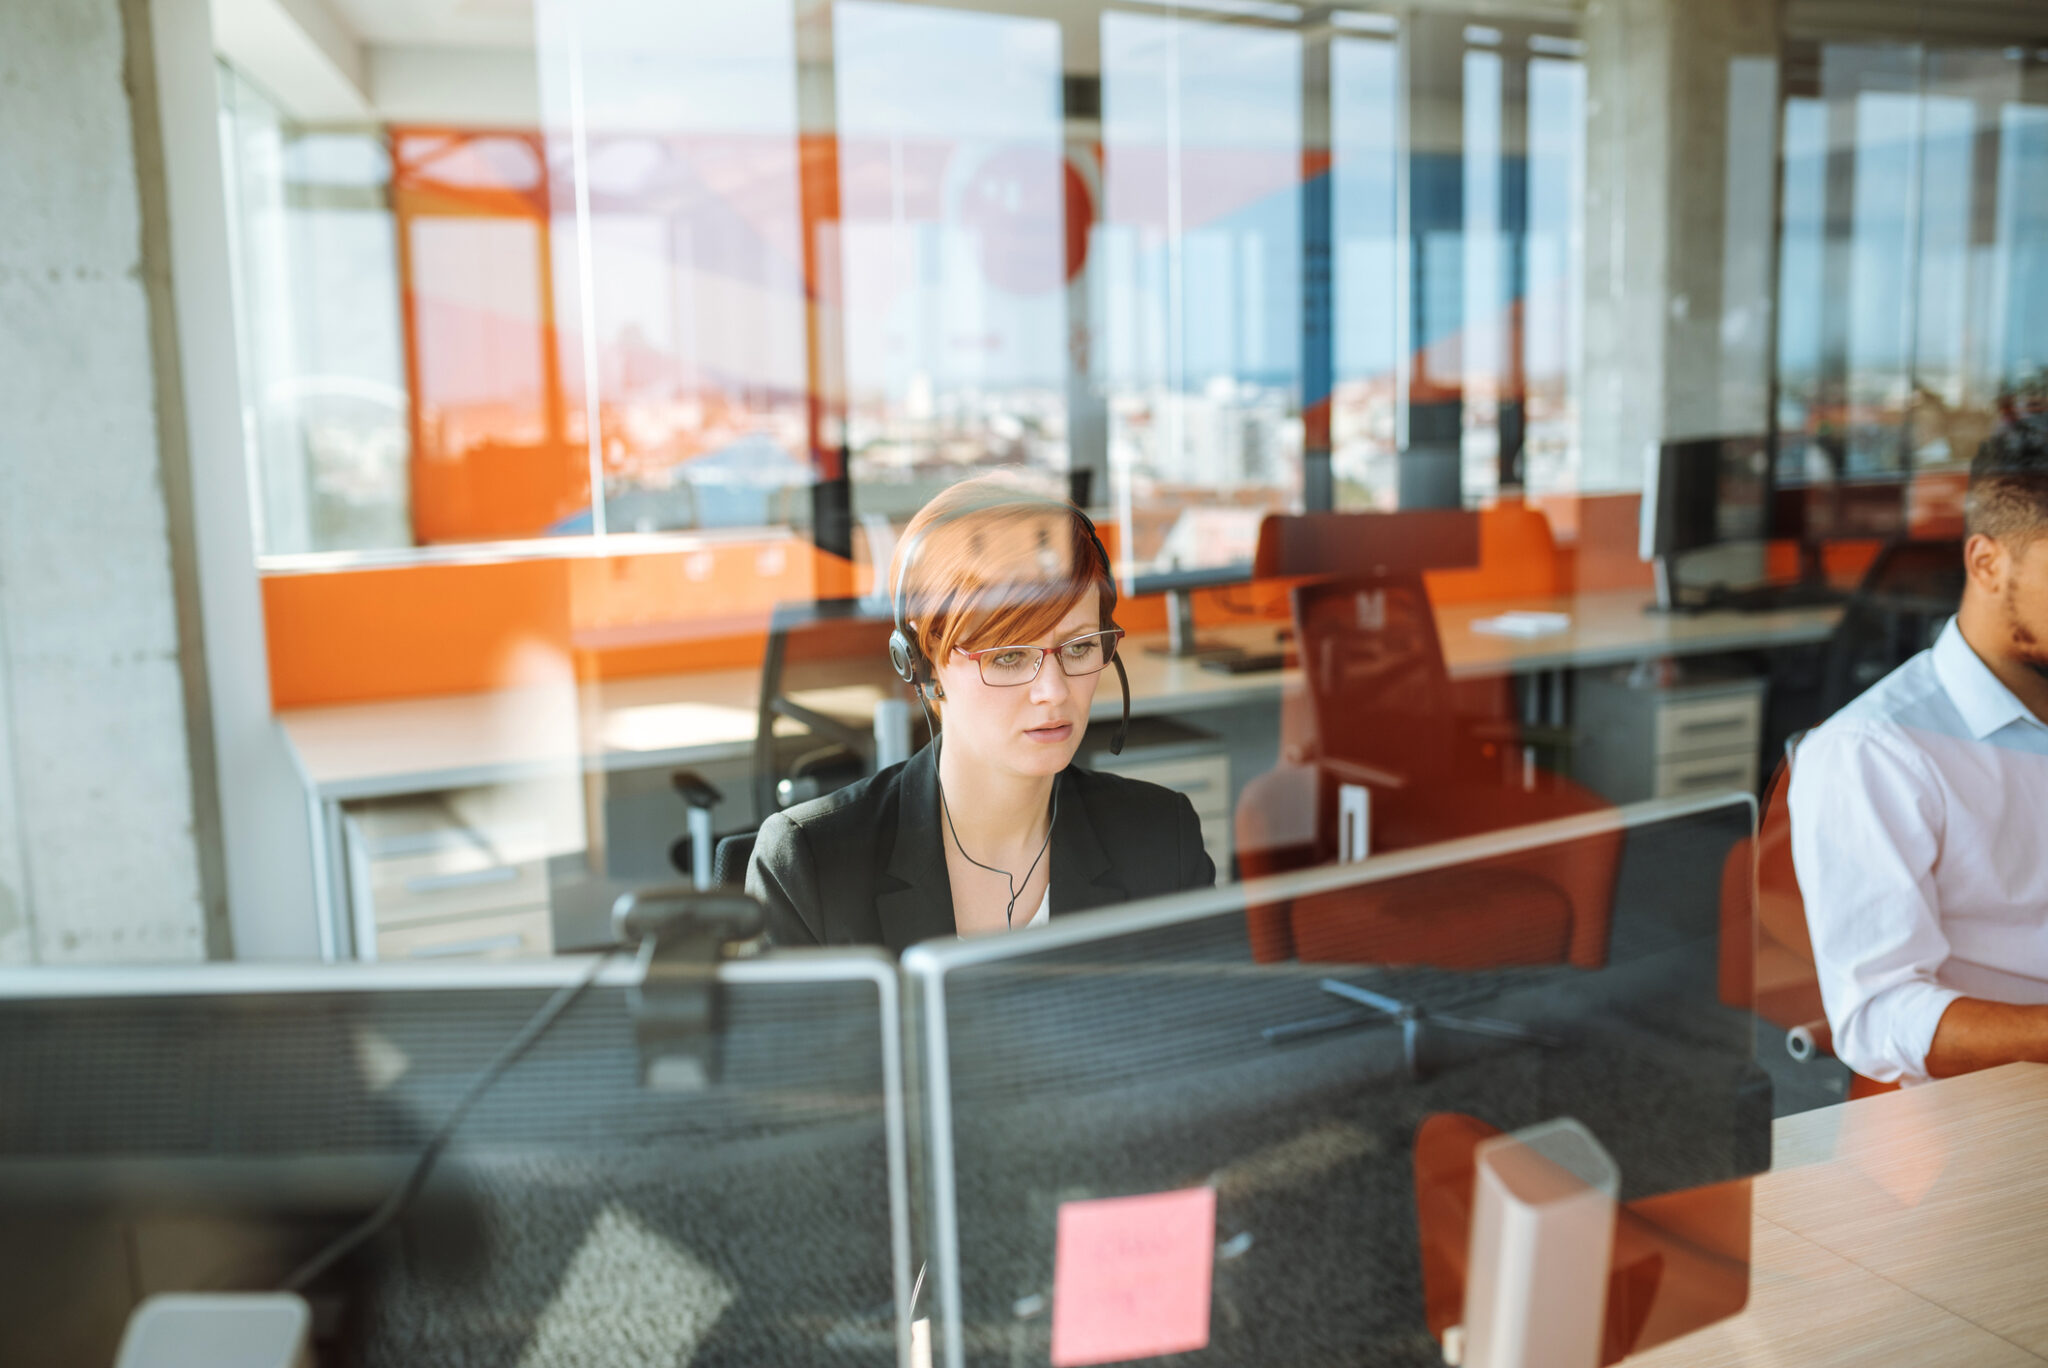 hiring a professional answering service